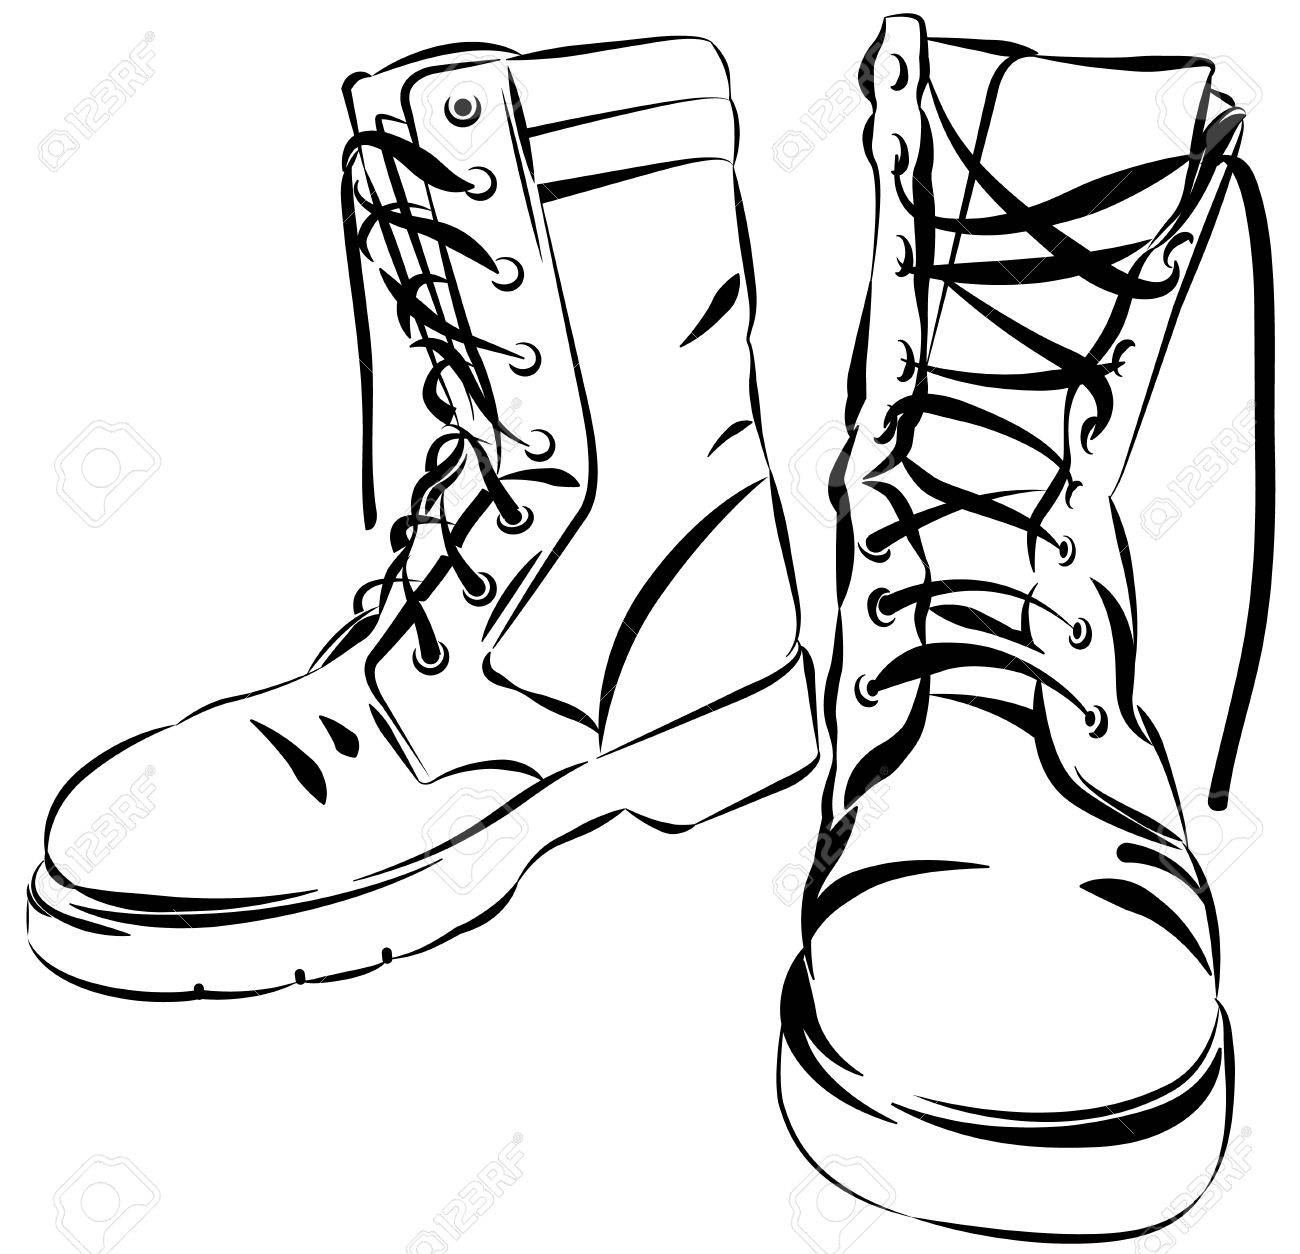 1300x1254 Old Army Boots. Military Leather Worn Boots. Vector Graphic